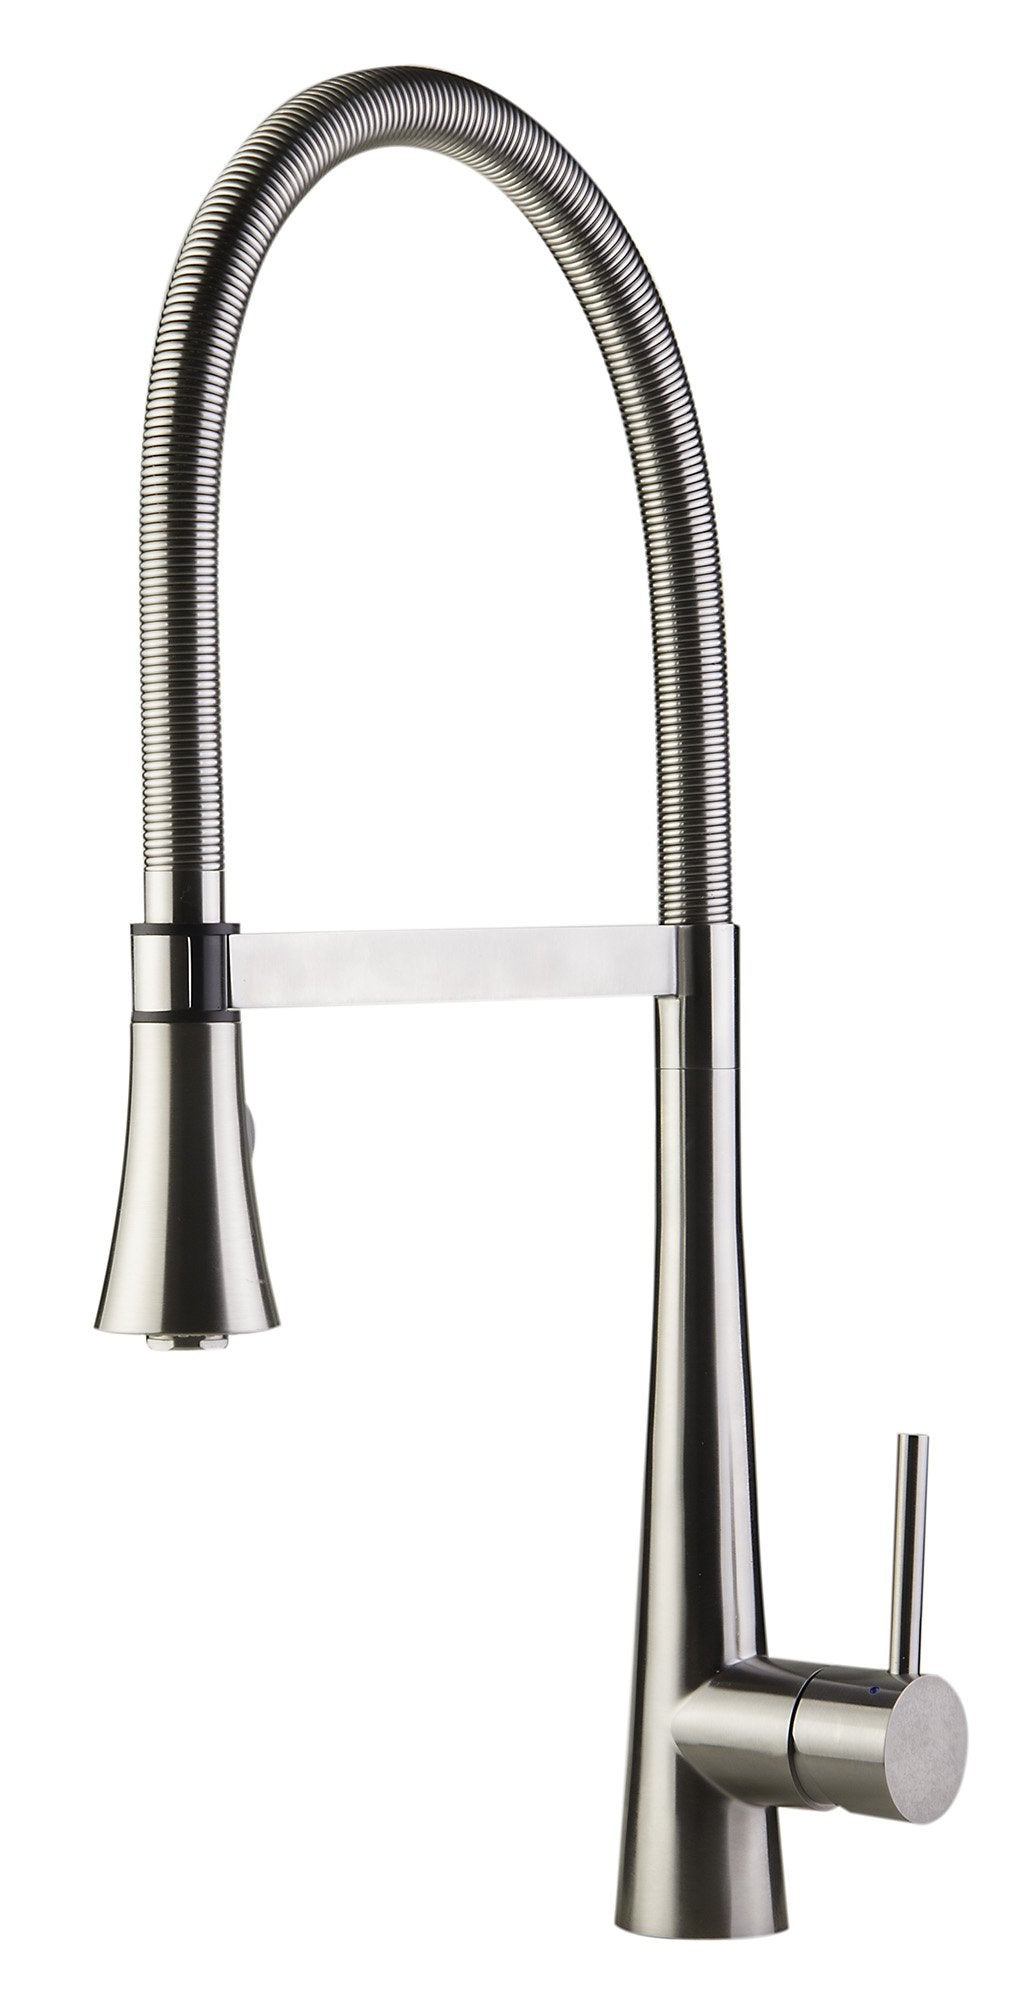 AB2027 Brushed Gooseneck Single Hole Faucet with Spray Head